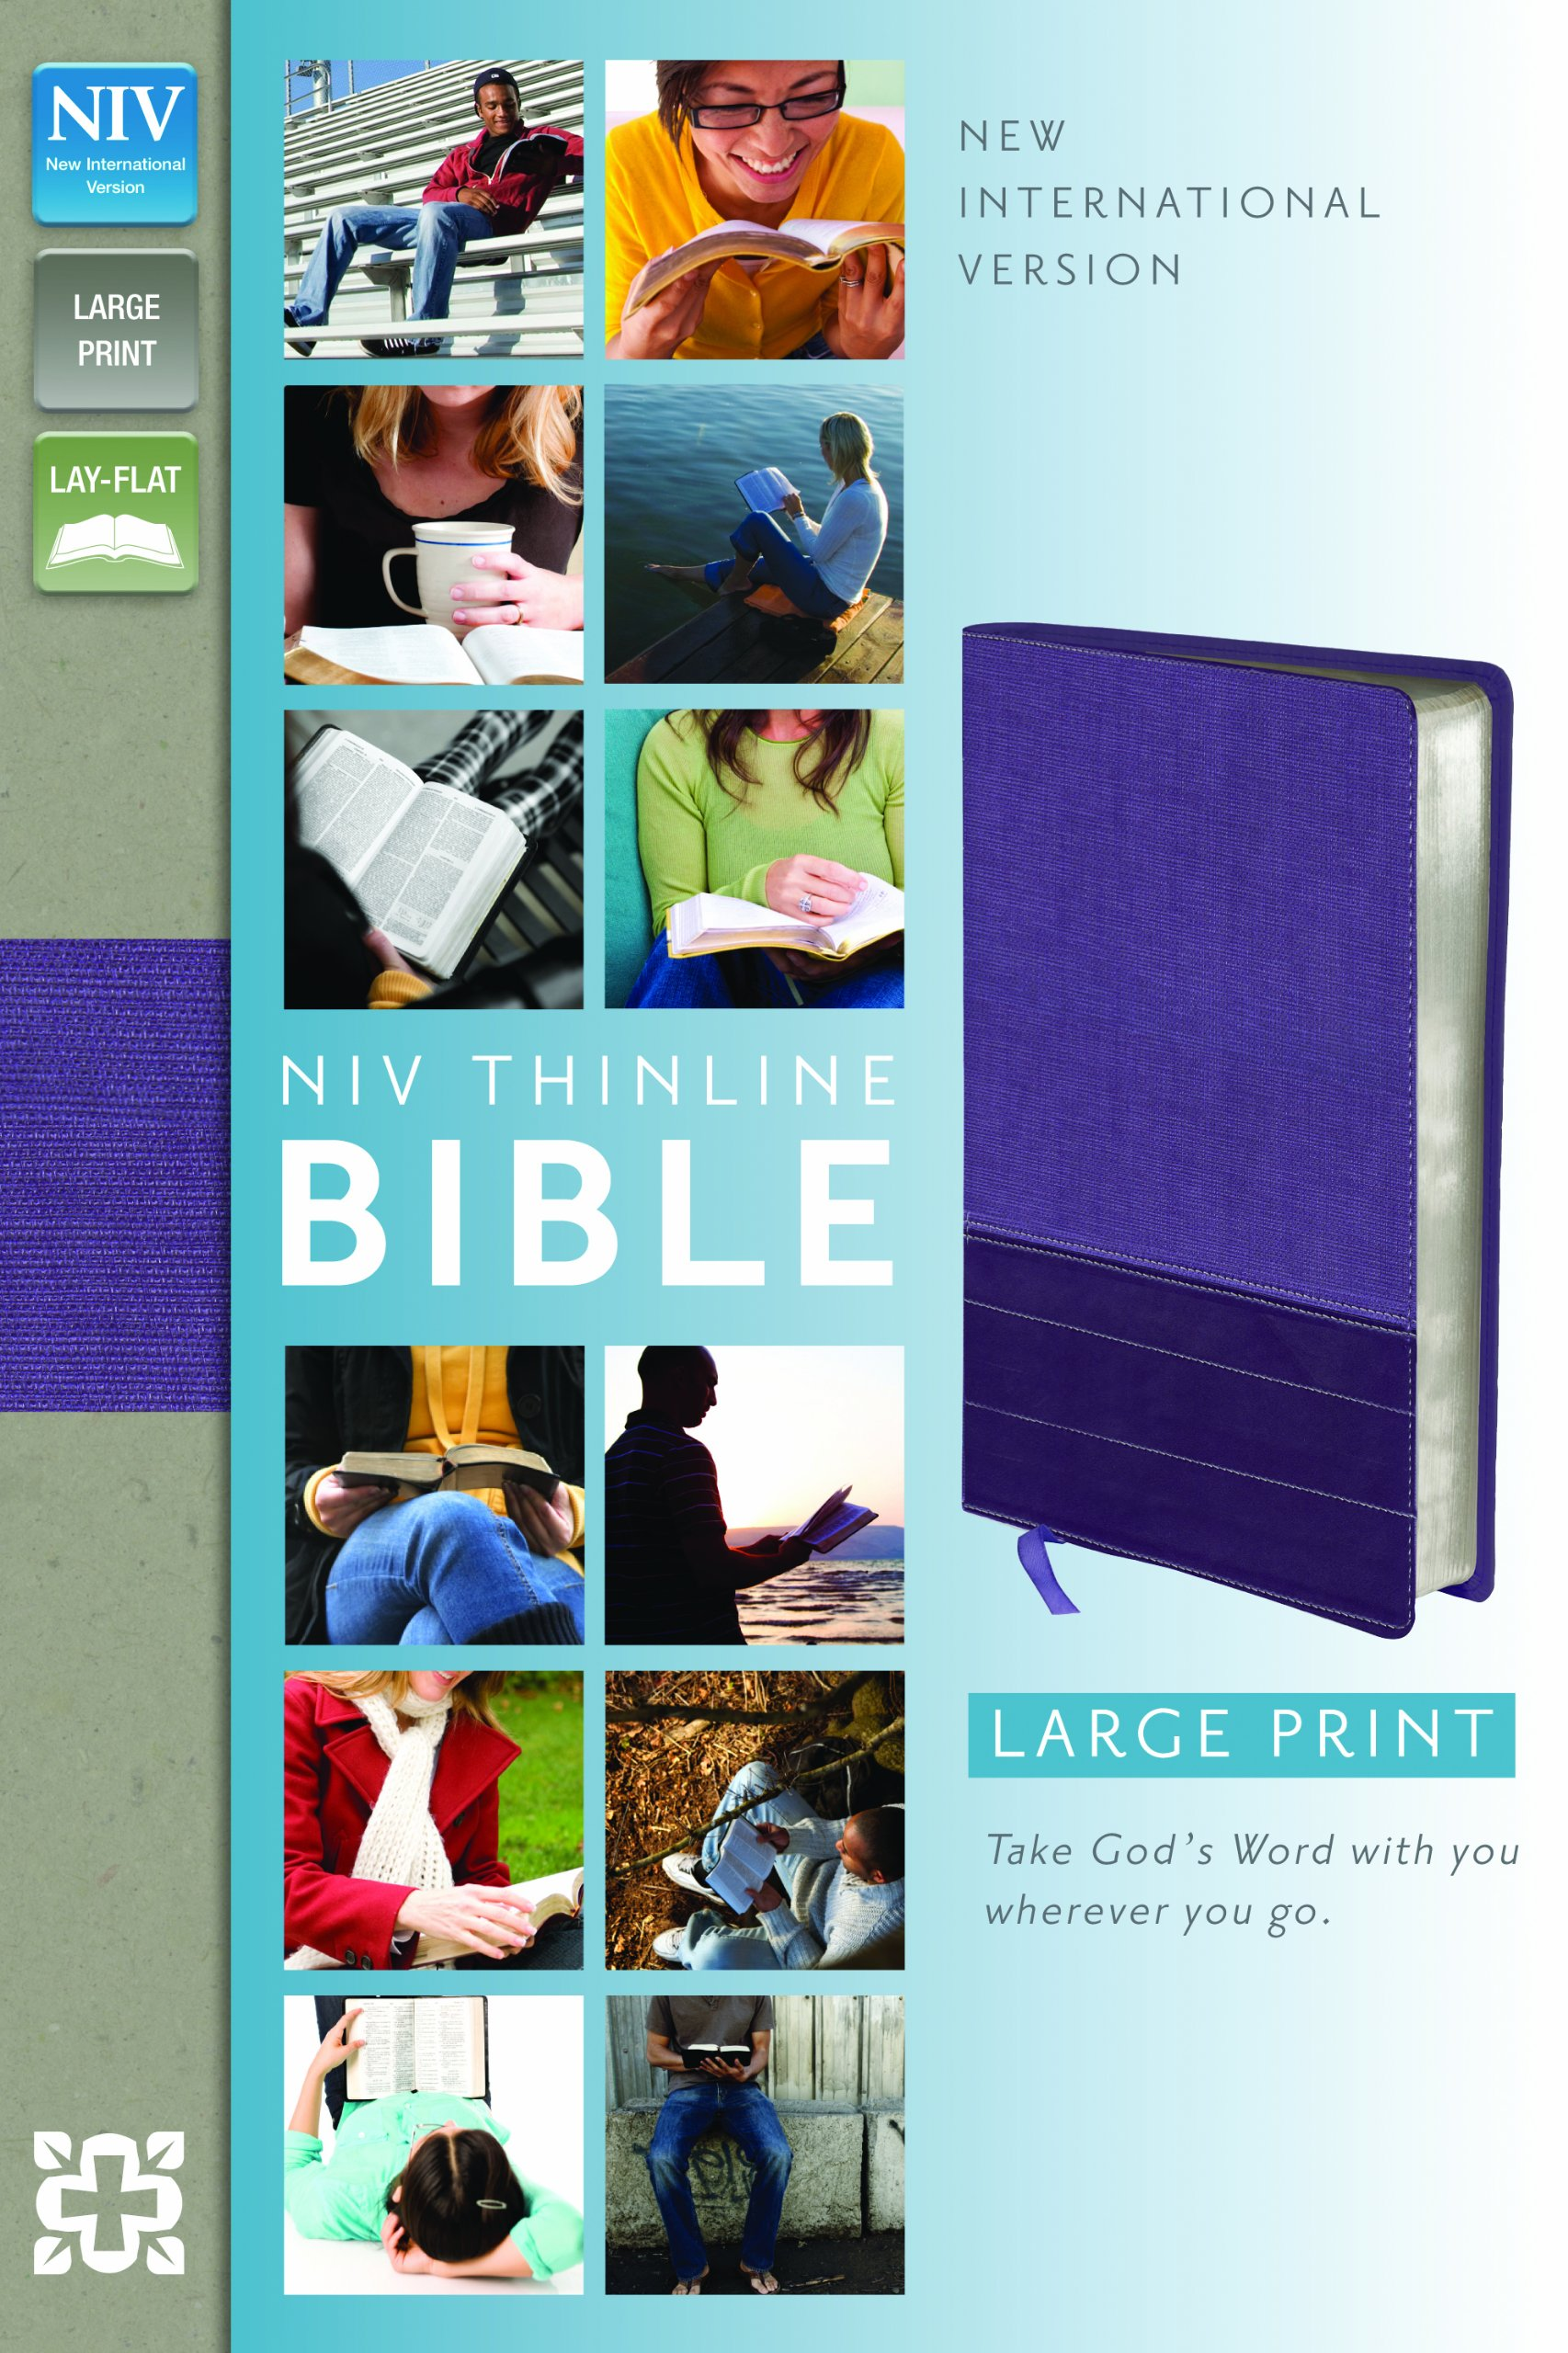 NIV, Thinline Bible, Large Print, Imitation Leather, Purple, Red Letter  Edition: Zondervan: 0025986435998: Amazon.com: Books